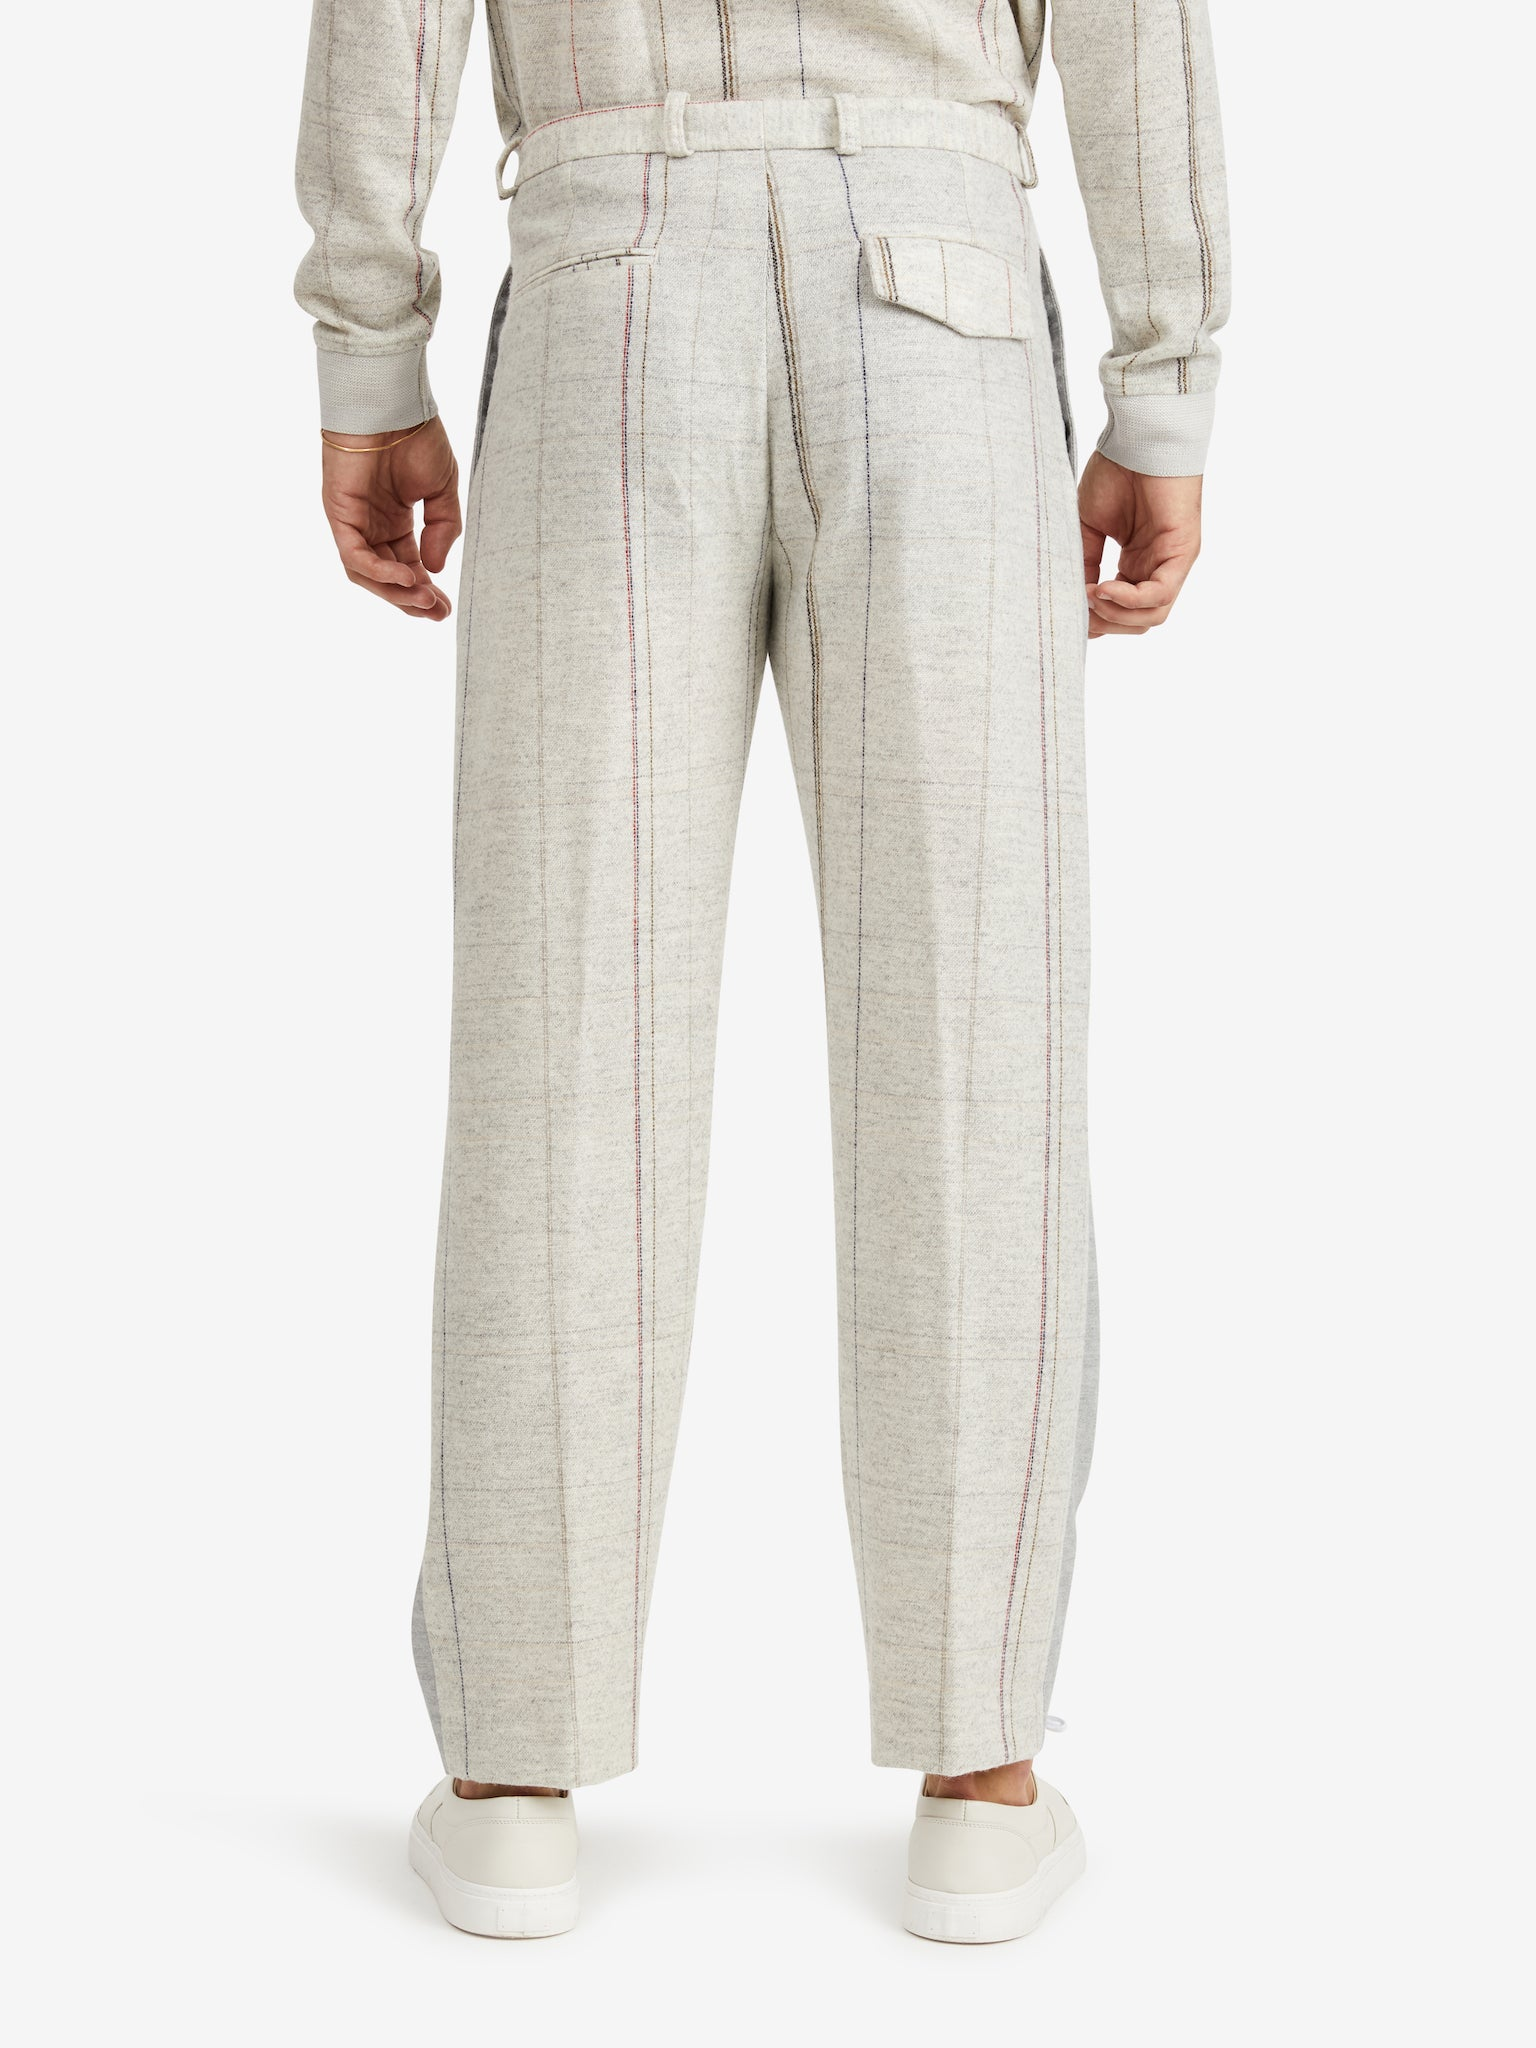 Stephan Schneider Sears Trousers